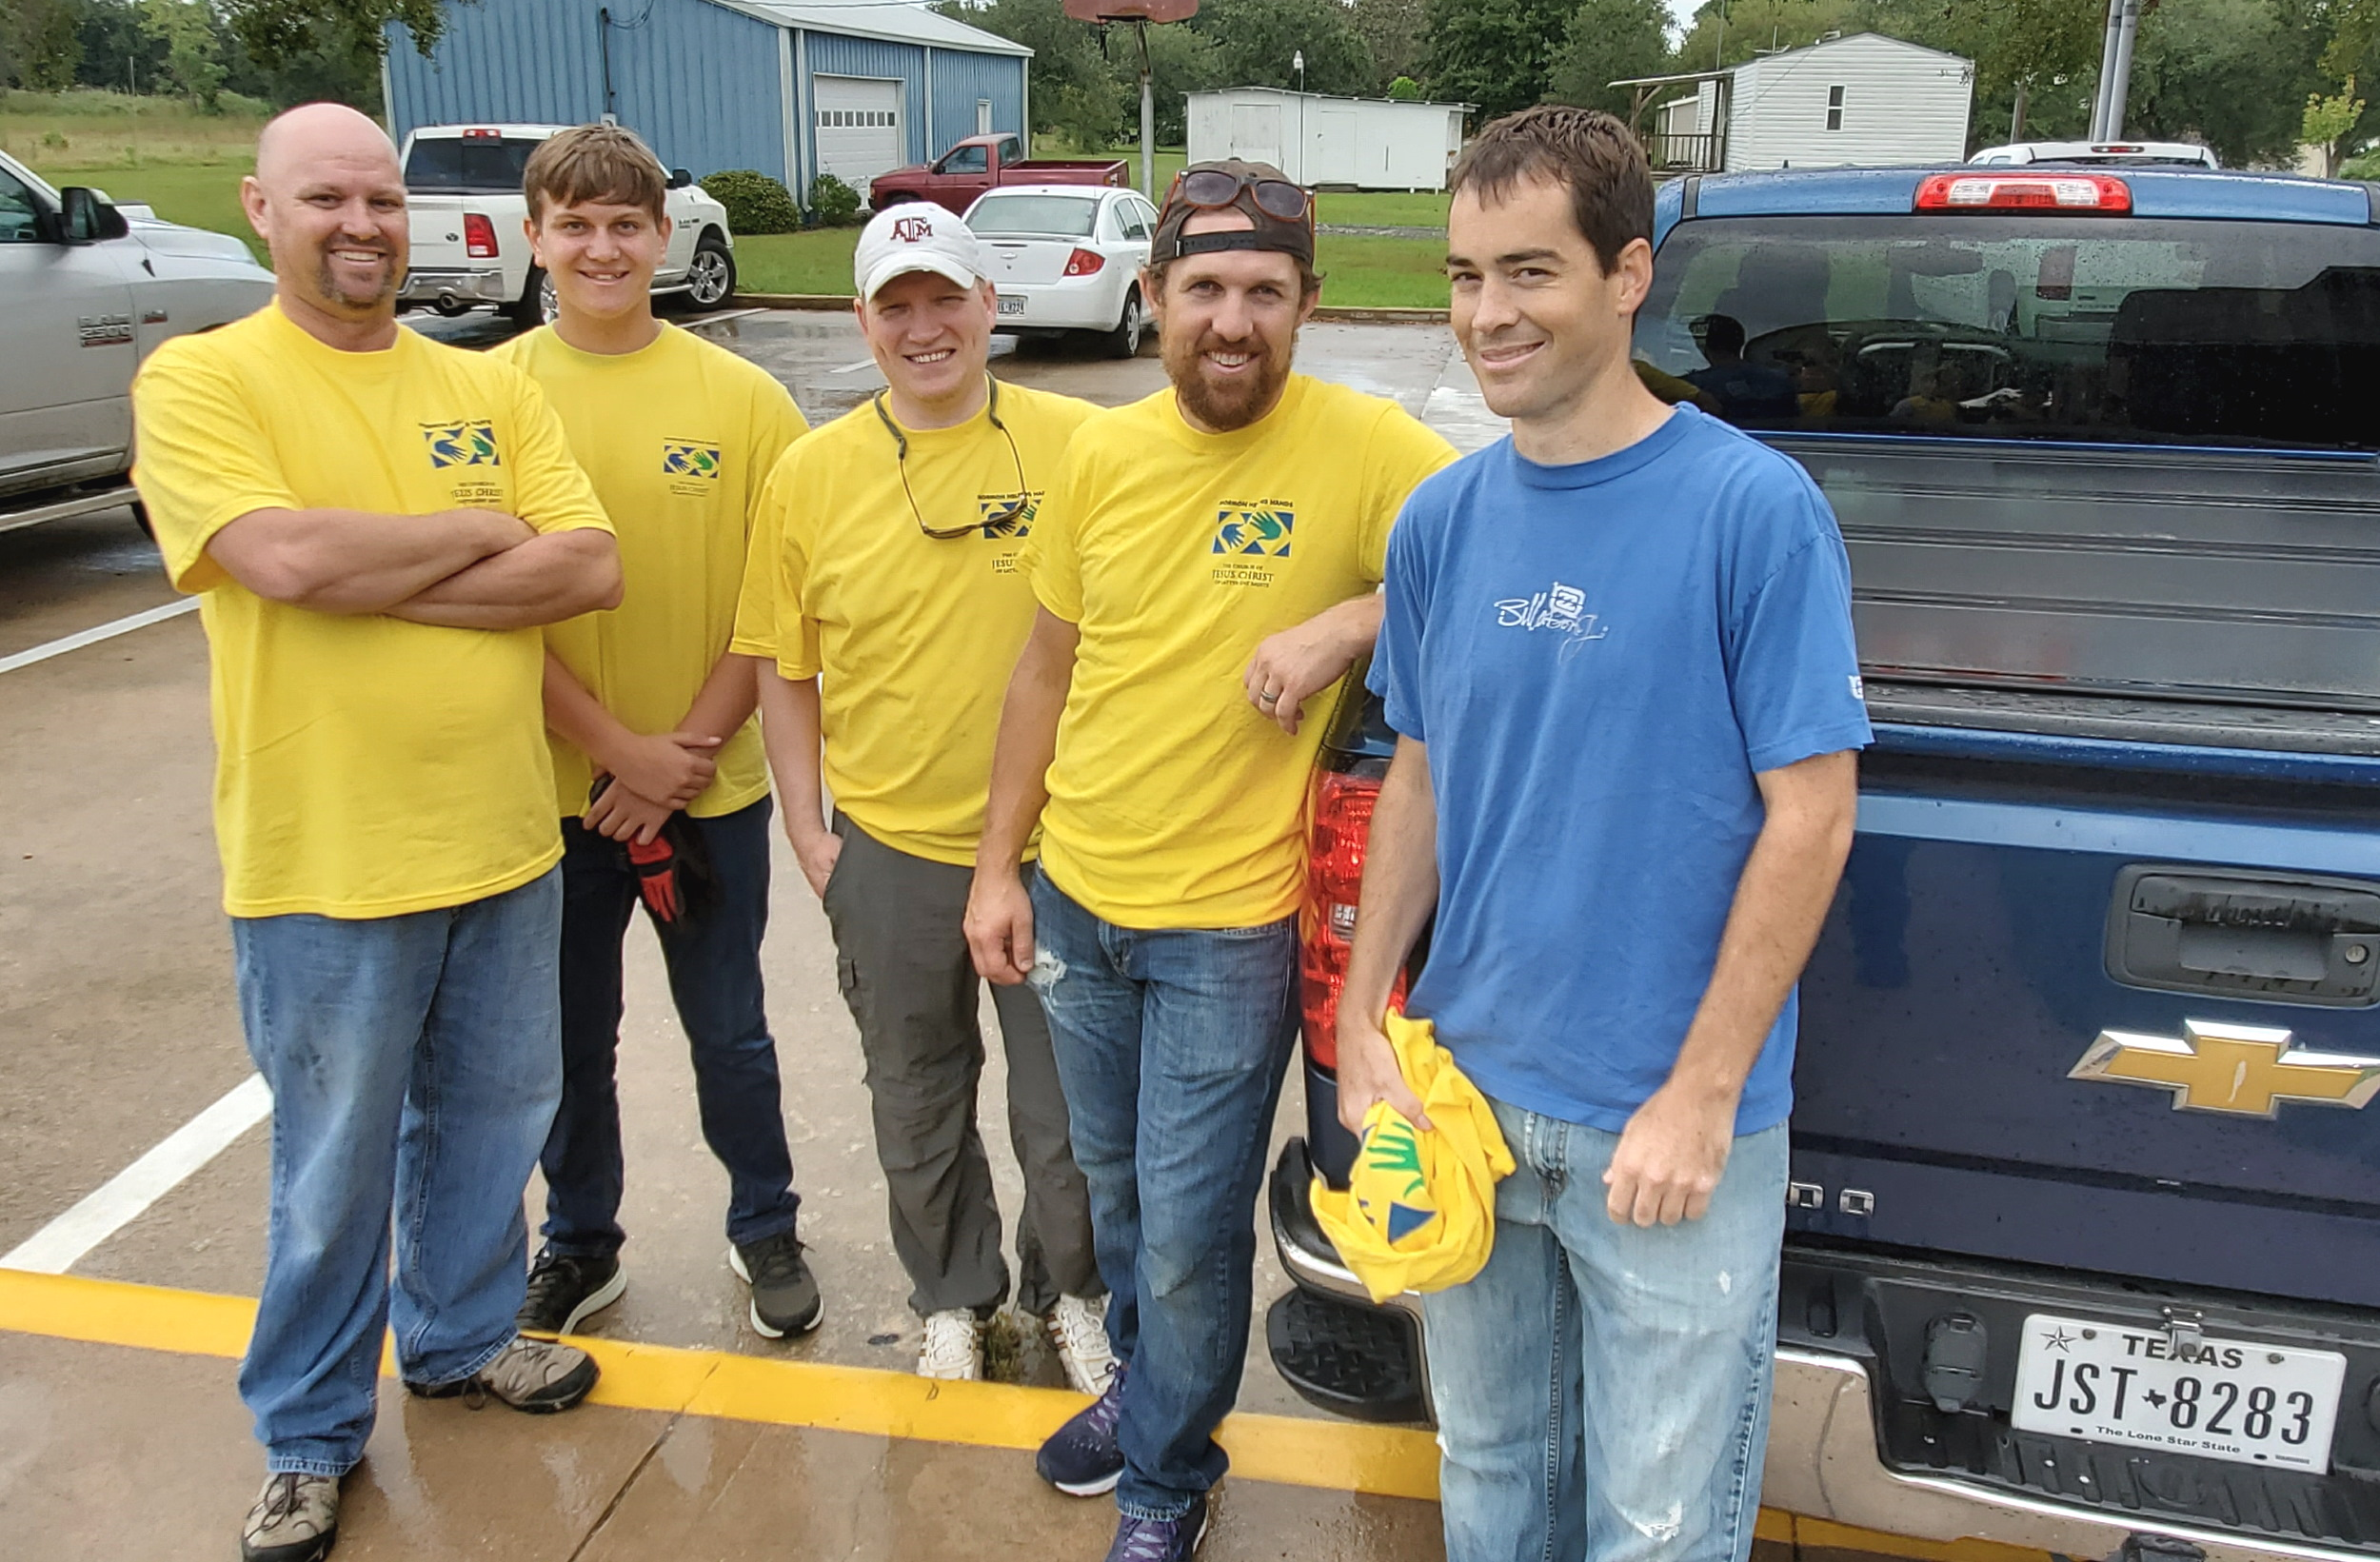 A fresh work crew ready, willing and able to help some of the many families in need.